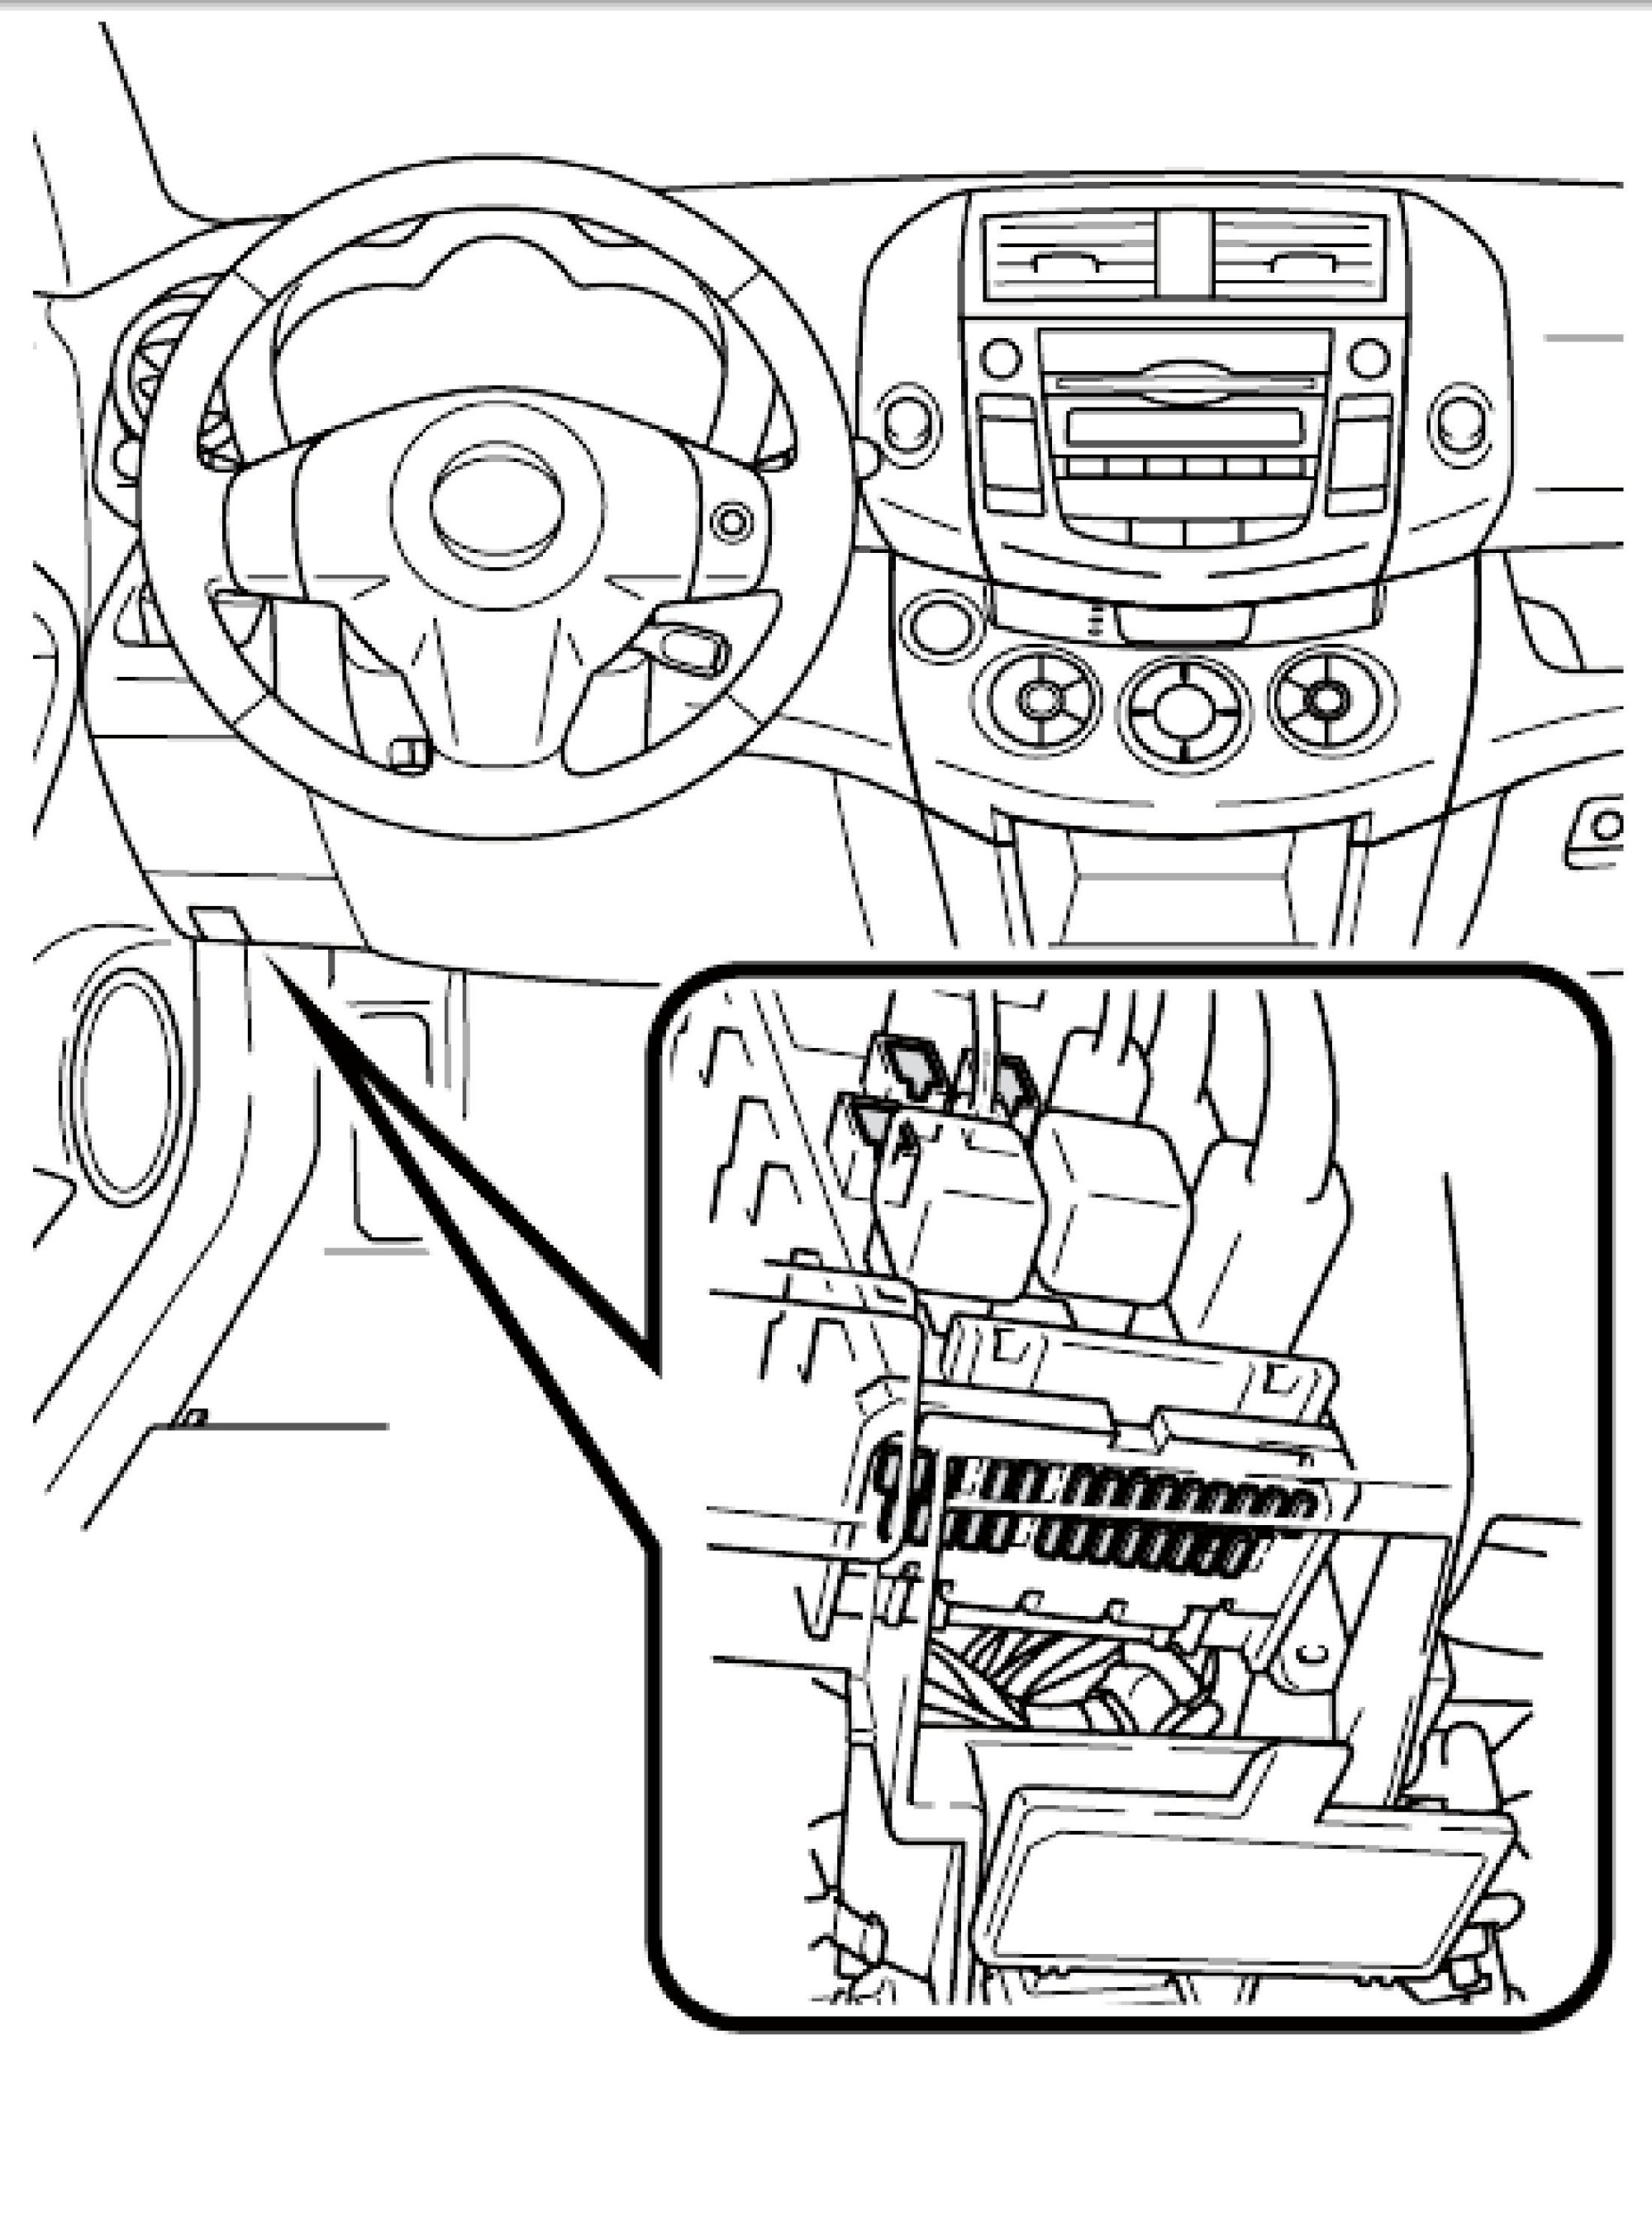 hight resolution of rav4 fuse diagram wiring diagrams dodge ram fuse box 1999 rav4 fuse box